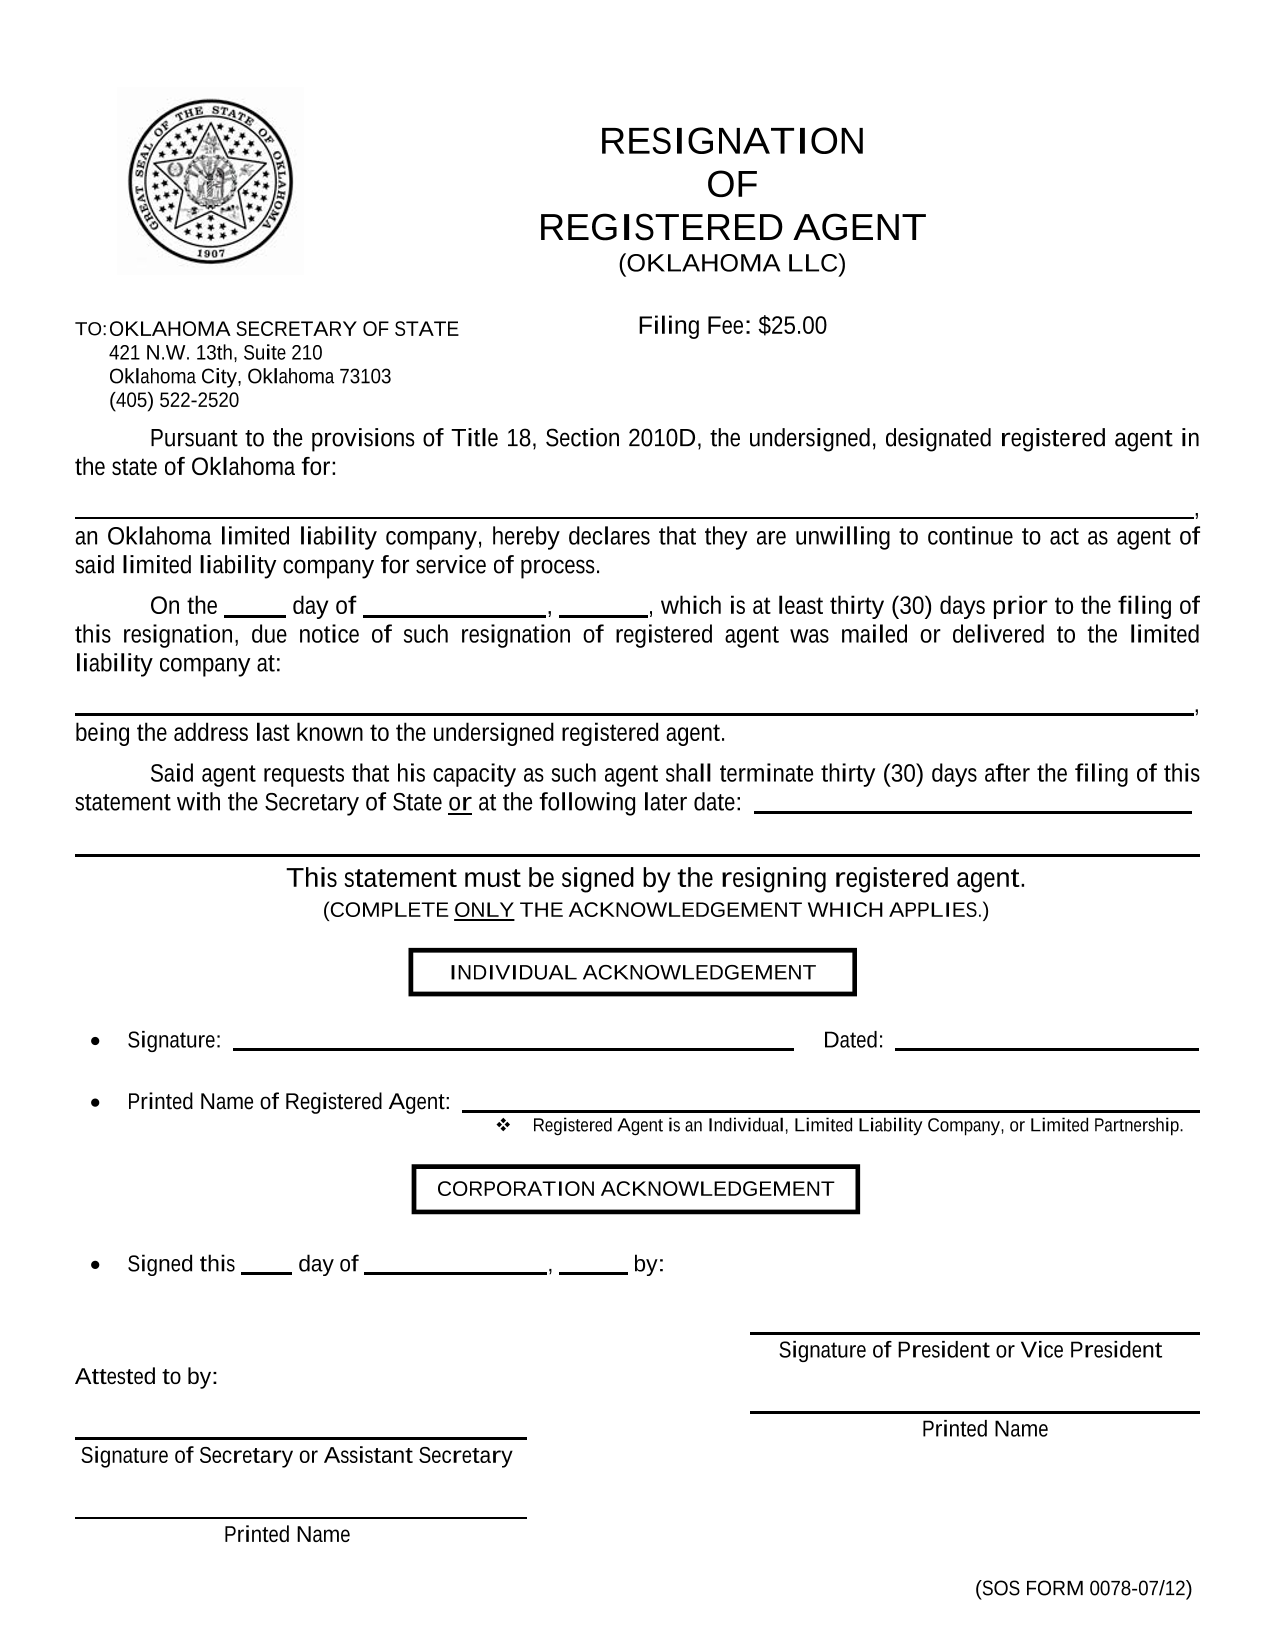 oklahoma-llc-resignation-of-registered-agent-coupled-with-appointment-of-successor